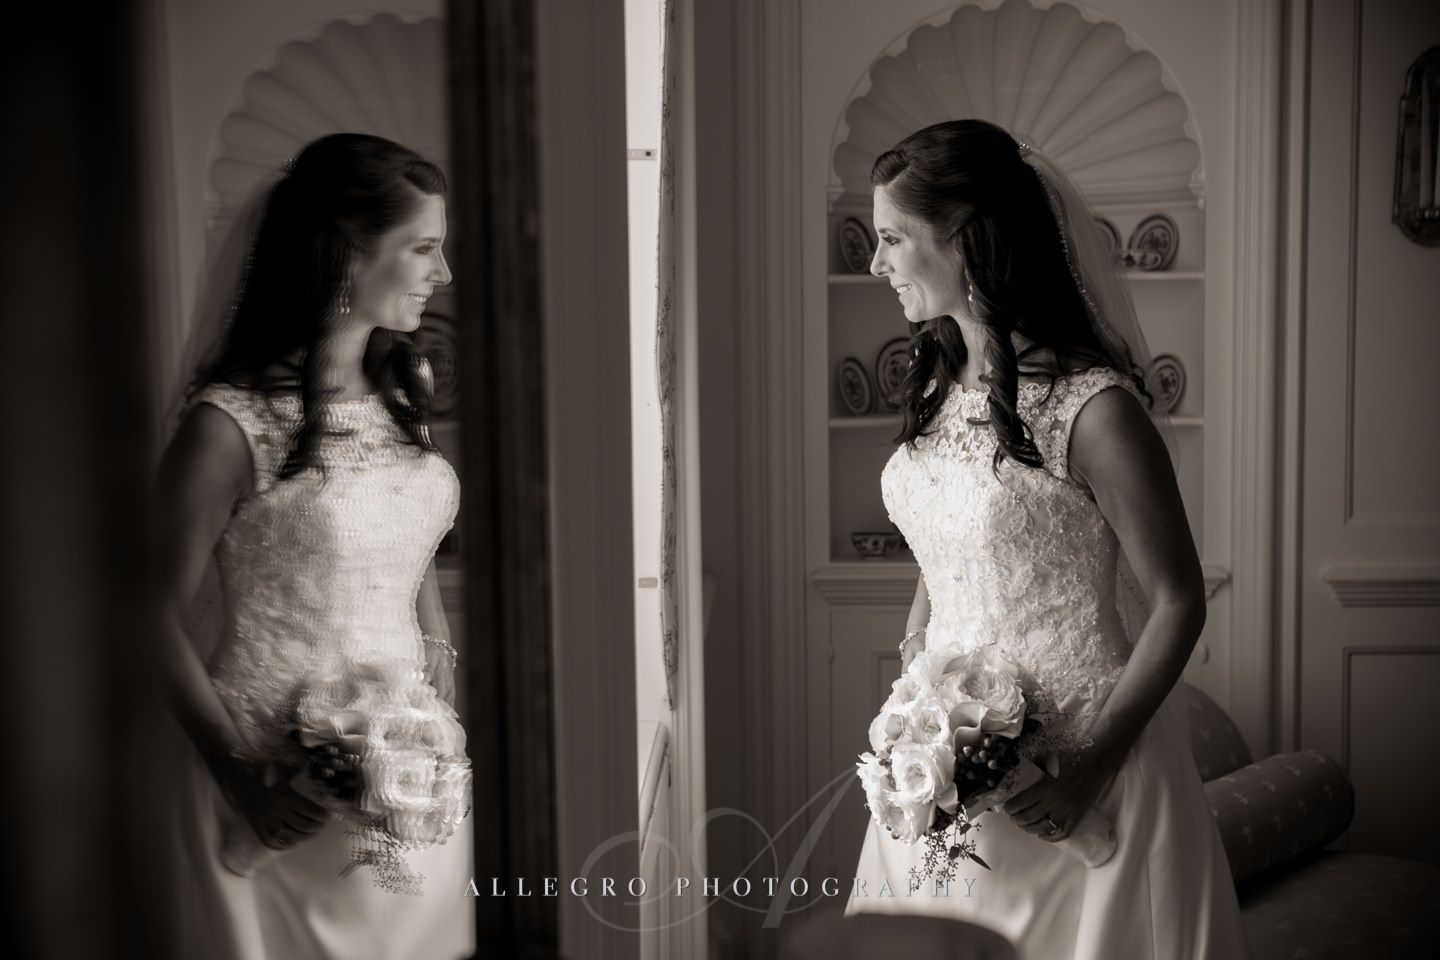 a portrait and a reflection of the bride- photo by Allegro Photography